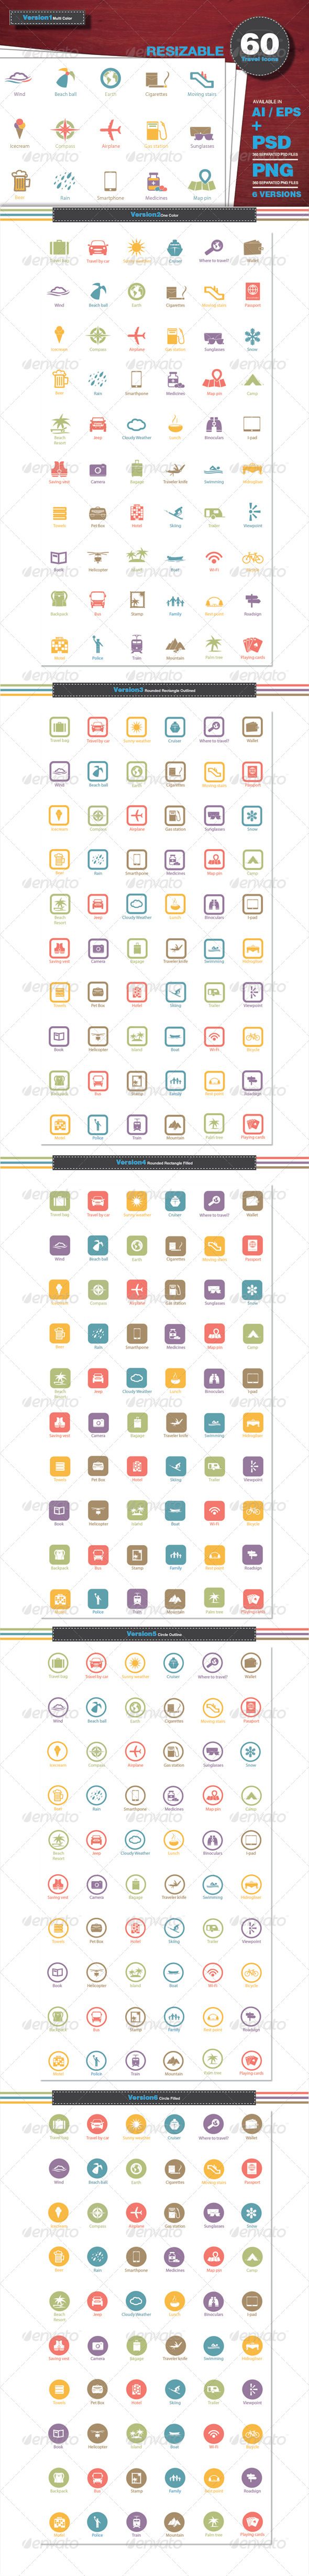 GraphicRiver Travel Icons 6333405